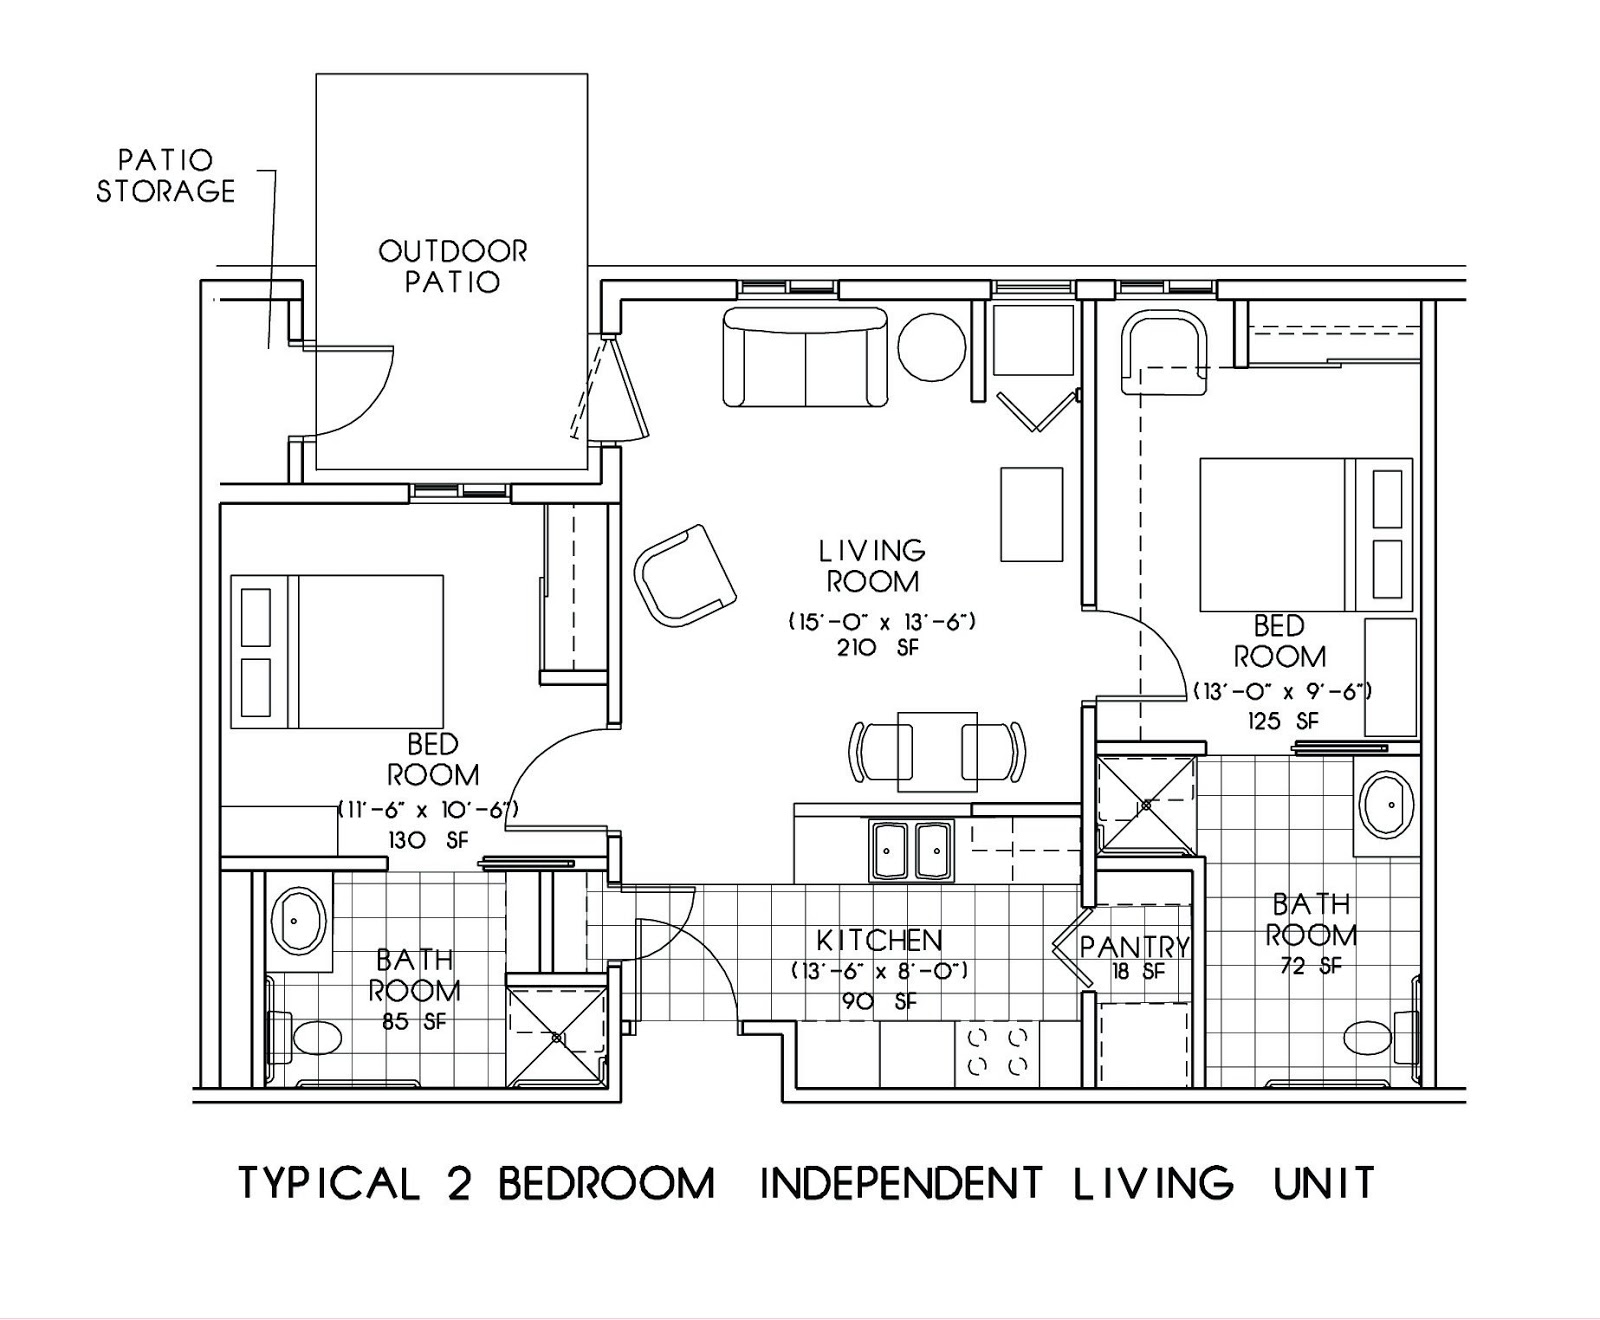 Thisiseveryday likewise Art Beautiful House Plans also A House In Nantucket Designed With An Upside Down Floorplan besides Art Beautiful House Plans moreover Upside Down House Plans Uk. on upside down living house designs